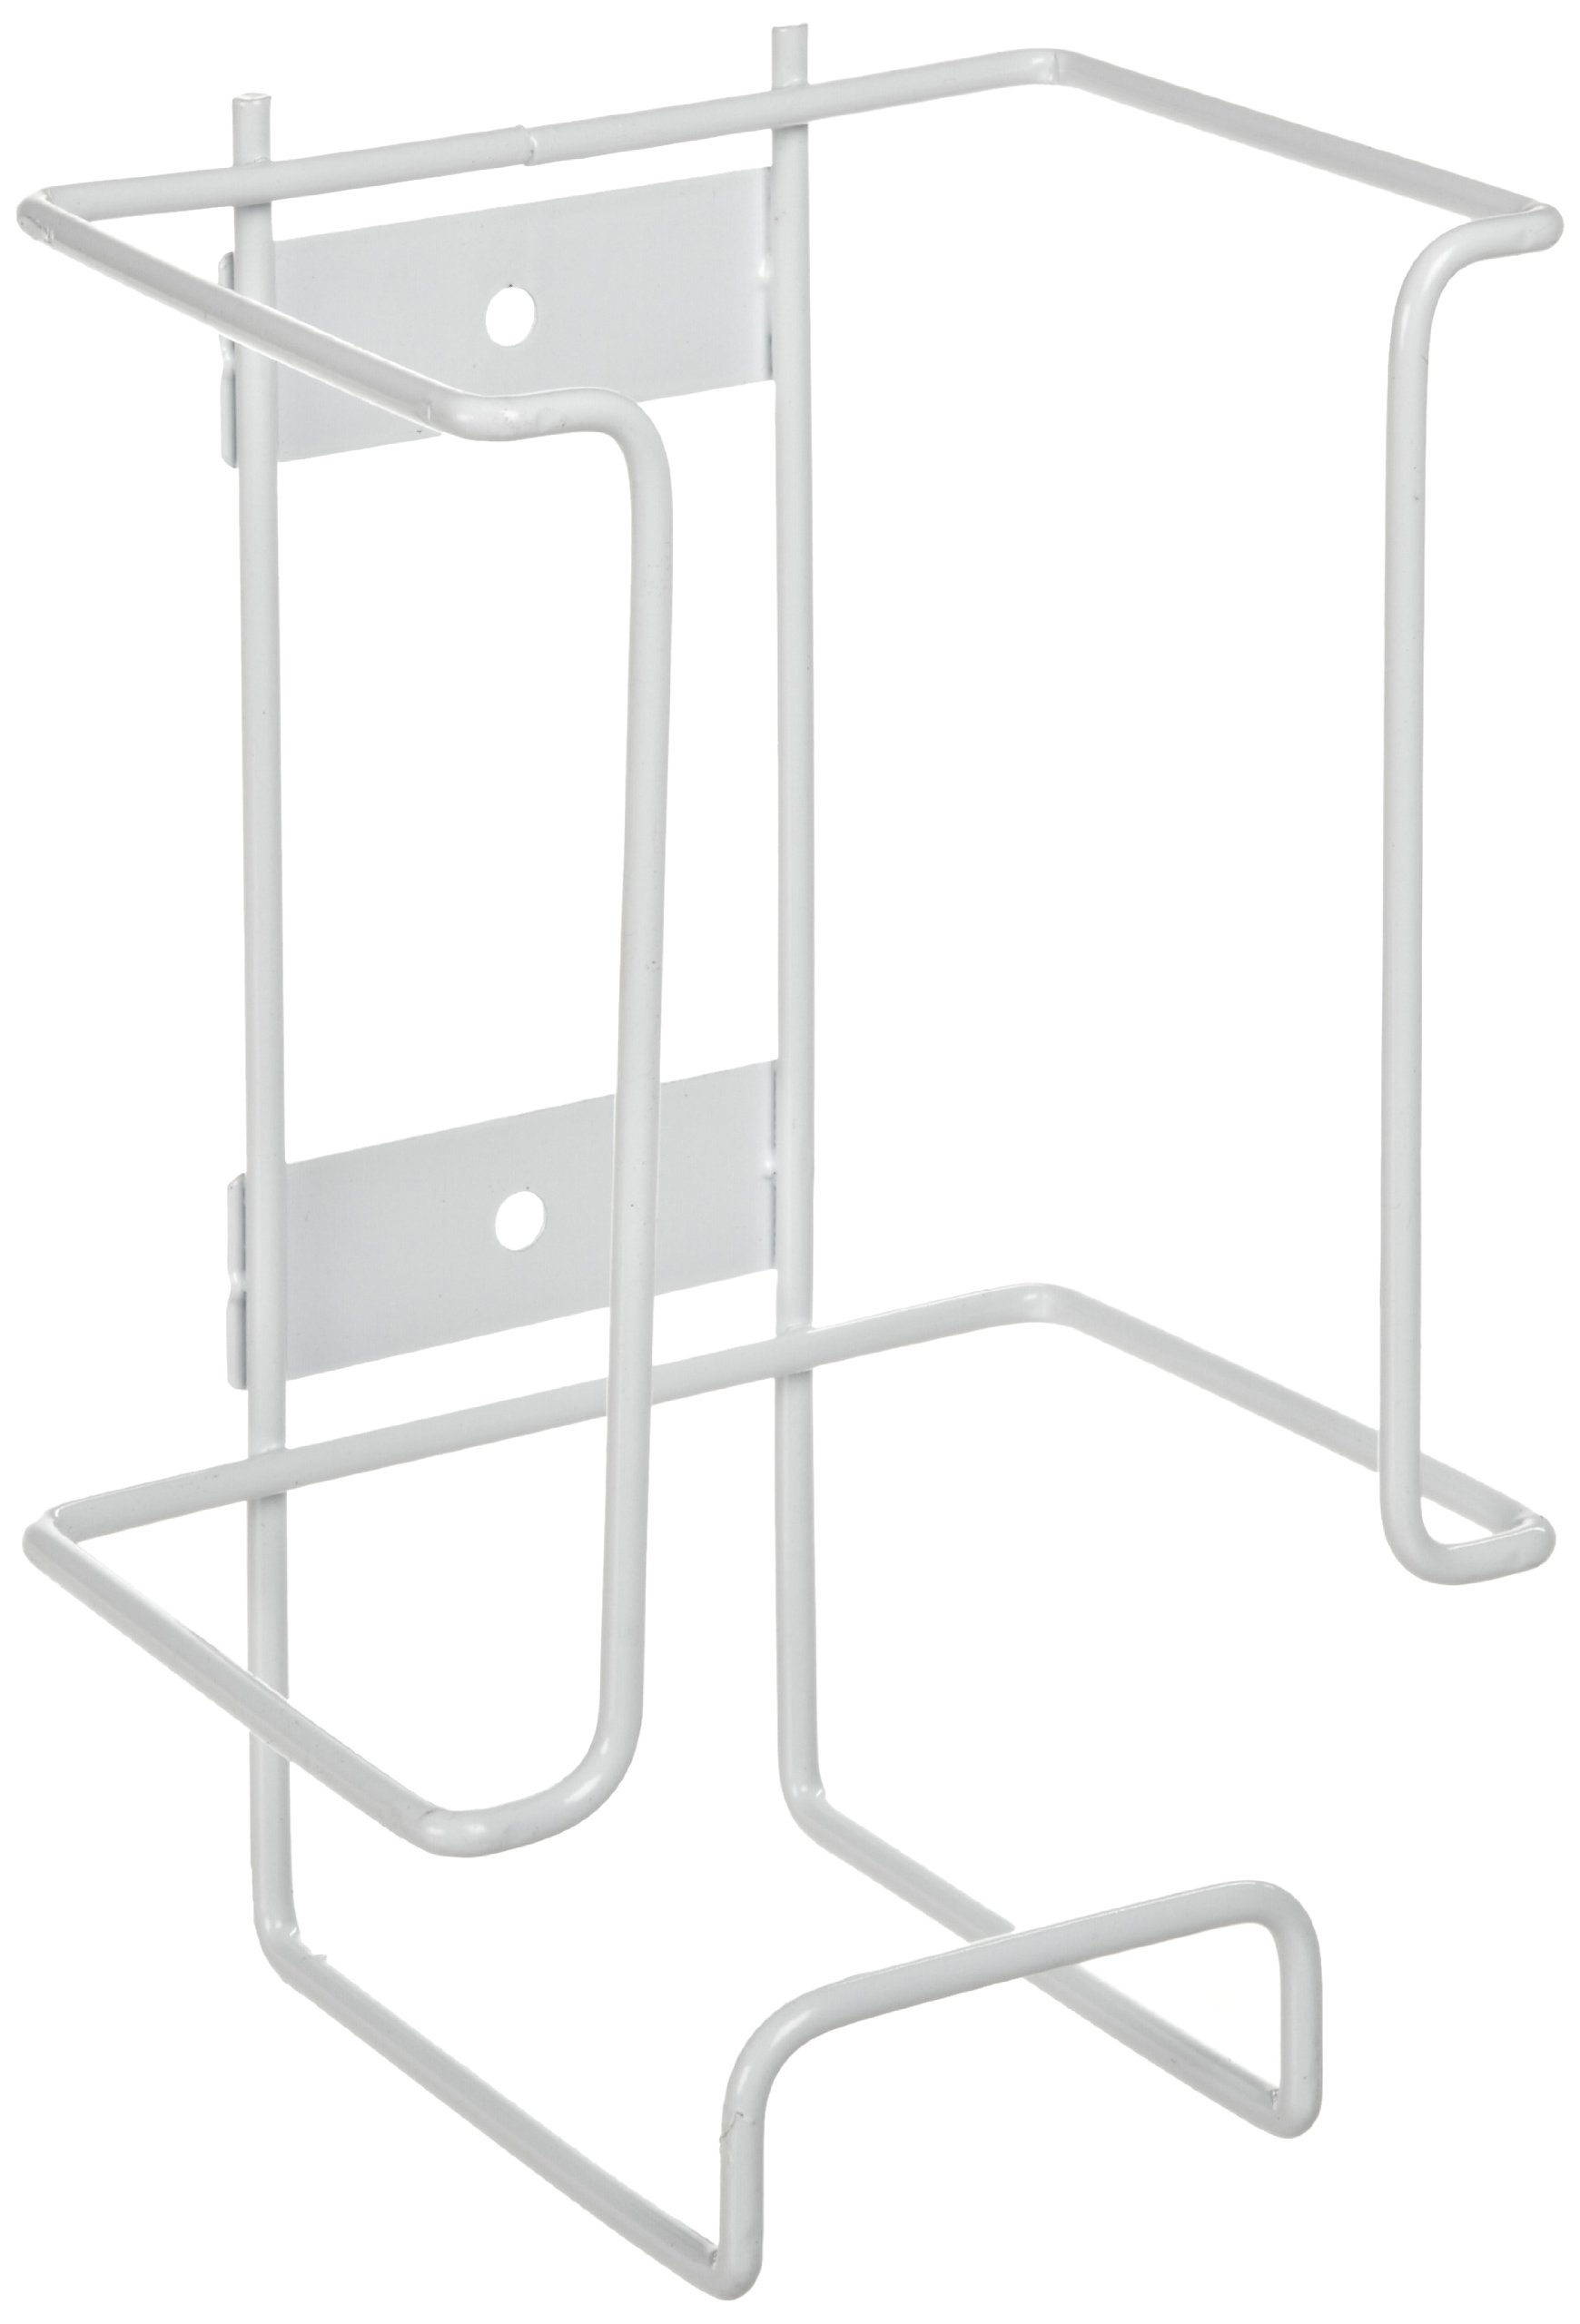 Heathrow Scientific Steel Wire Disposable Glove Box Holder, 1 Box Capacity, 140mm Width x 208mm Height x 108mm Depth (Pack of 1)